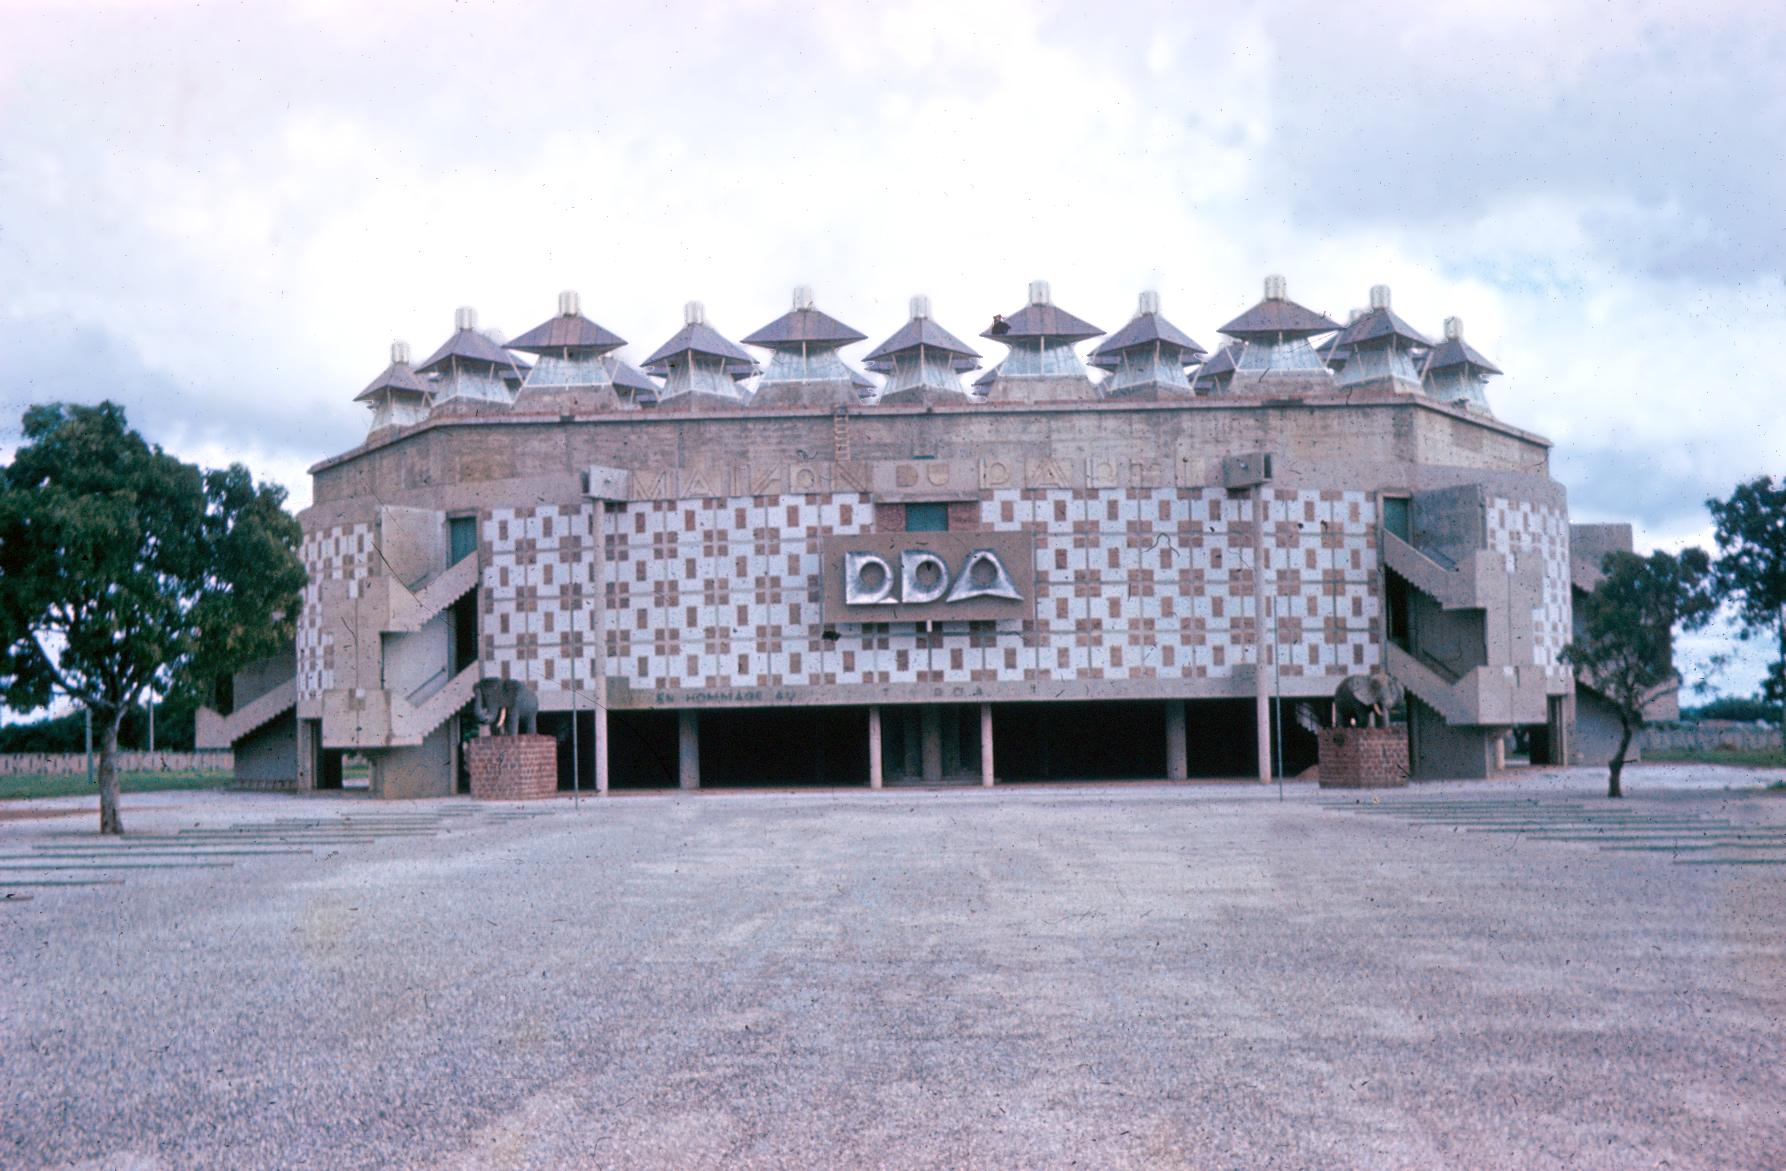 Headquarters of the Ruling RDA Party